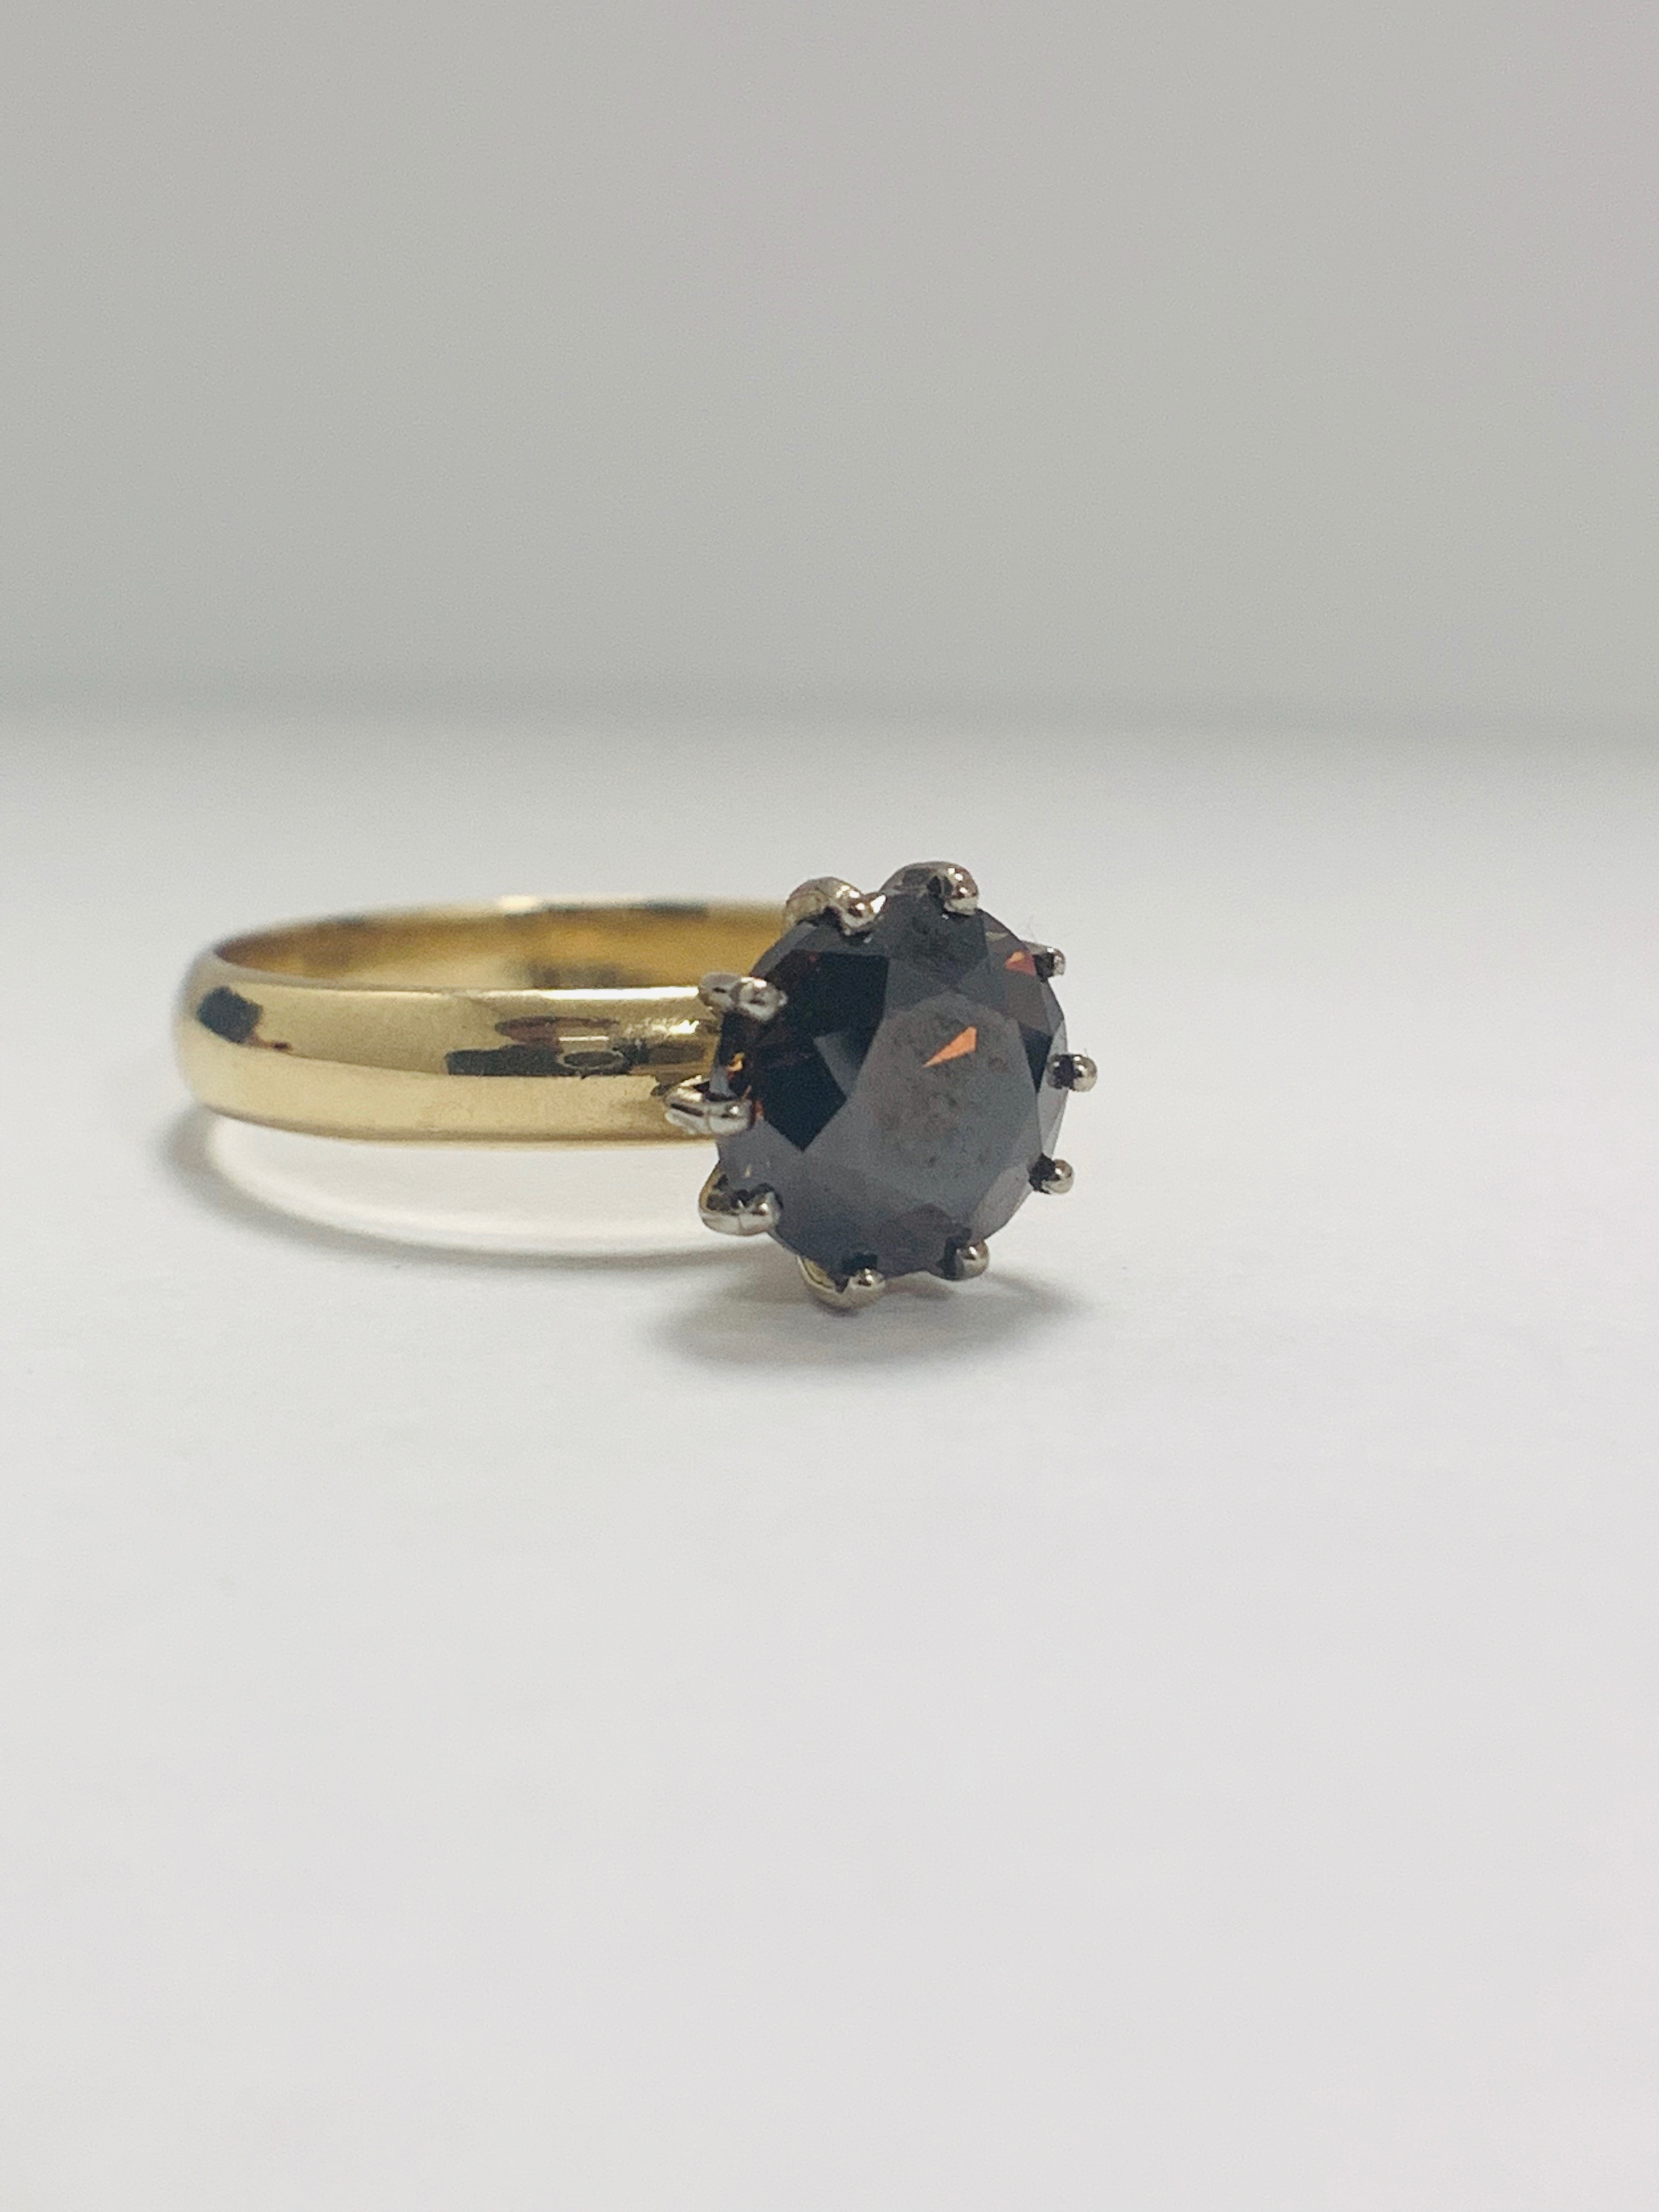 18ct Yellow Gold Diamond ring featuring centre, round brilliant cut, deep orangey brown Diamond (3.3 - Image 8 of 13